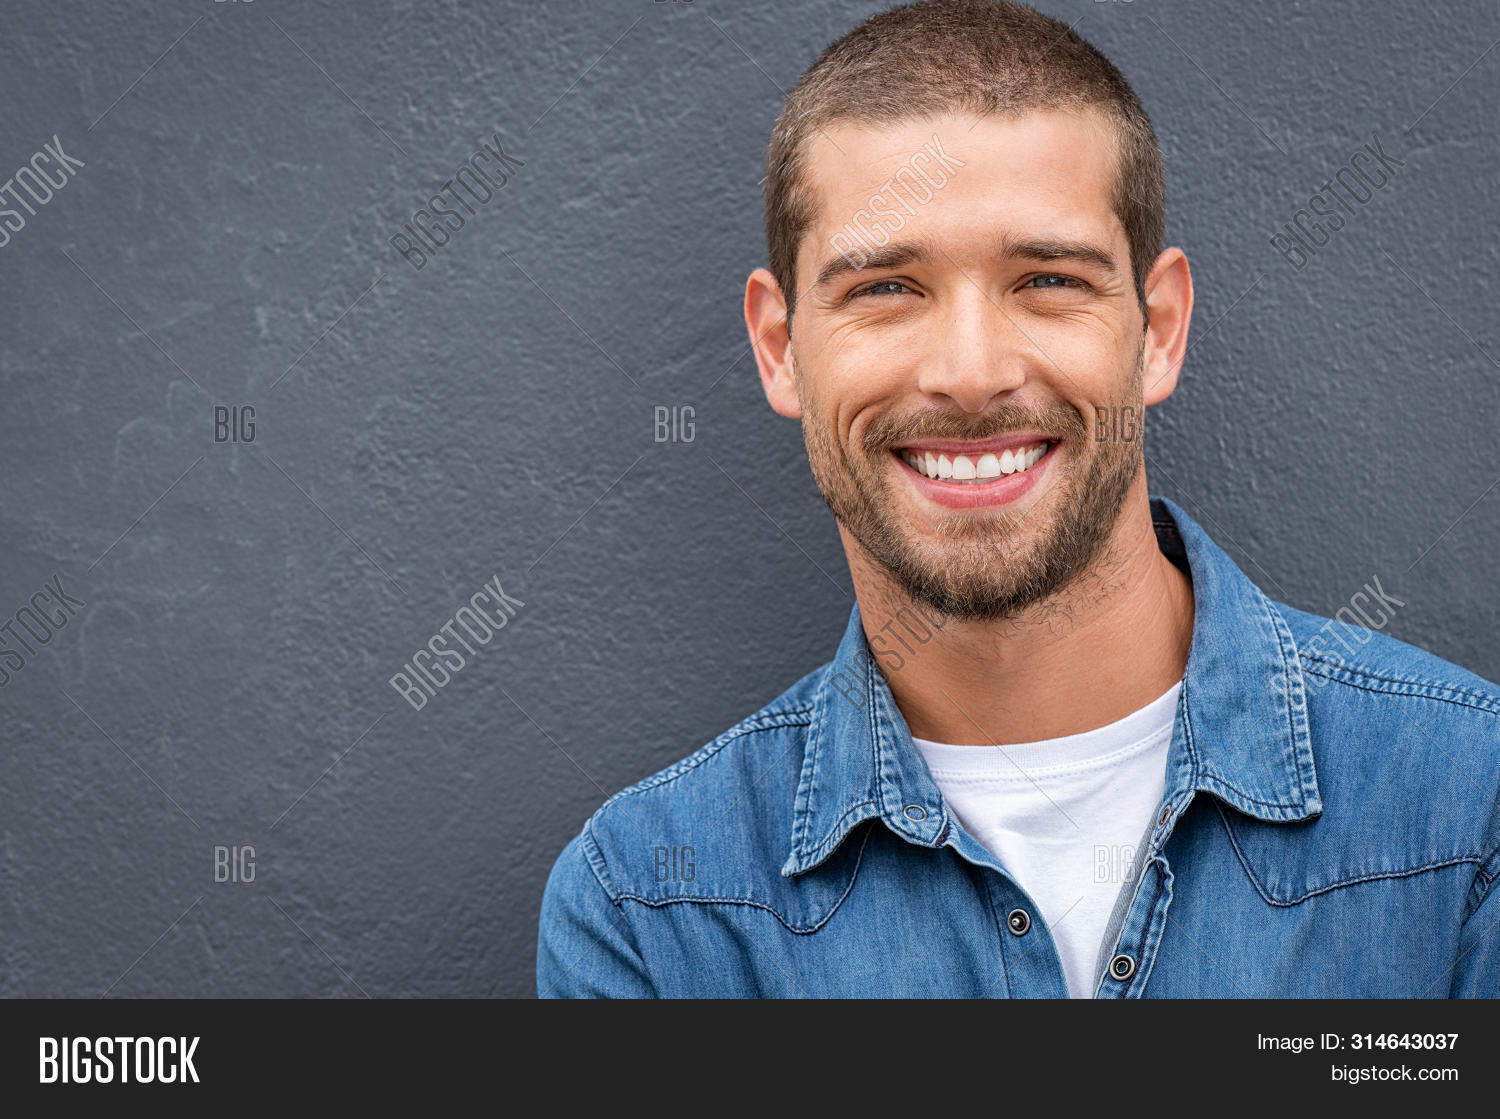 attractive,background,casual,casual man,cheerful,closeup,confident,cool,copy space,enjoy,expression,face,fashionable,friendly,gray,gray wall,grey background,guy,handsome,handsome guy,happy,isolated,joyful,leaning,looking,looking at camera,man,people,portrait,portrait man,positive,satisfaction,satisfied,smile,studio,stylish,success,successful,toothy smile,trendy,wall,young,young man